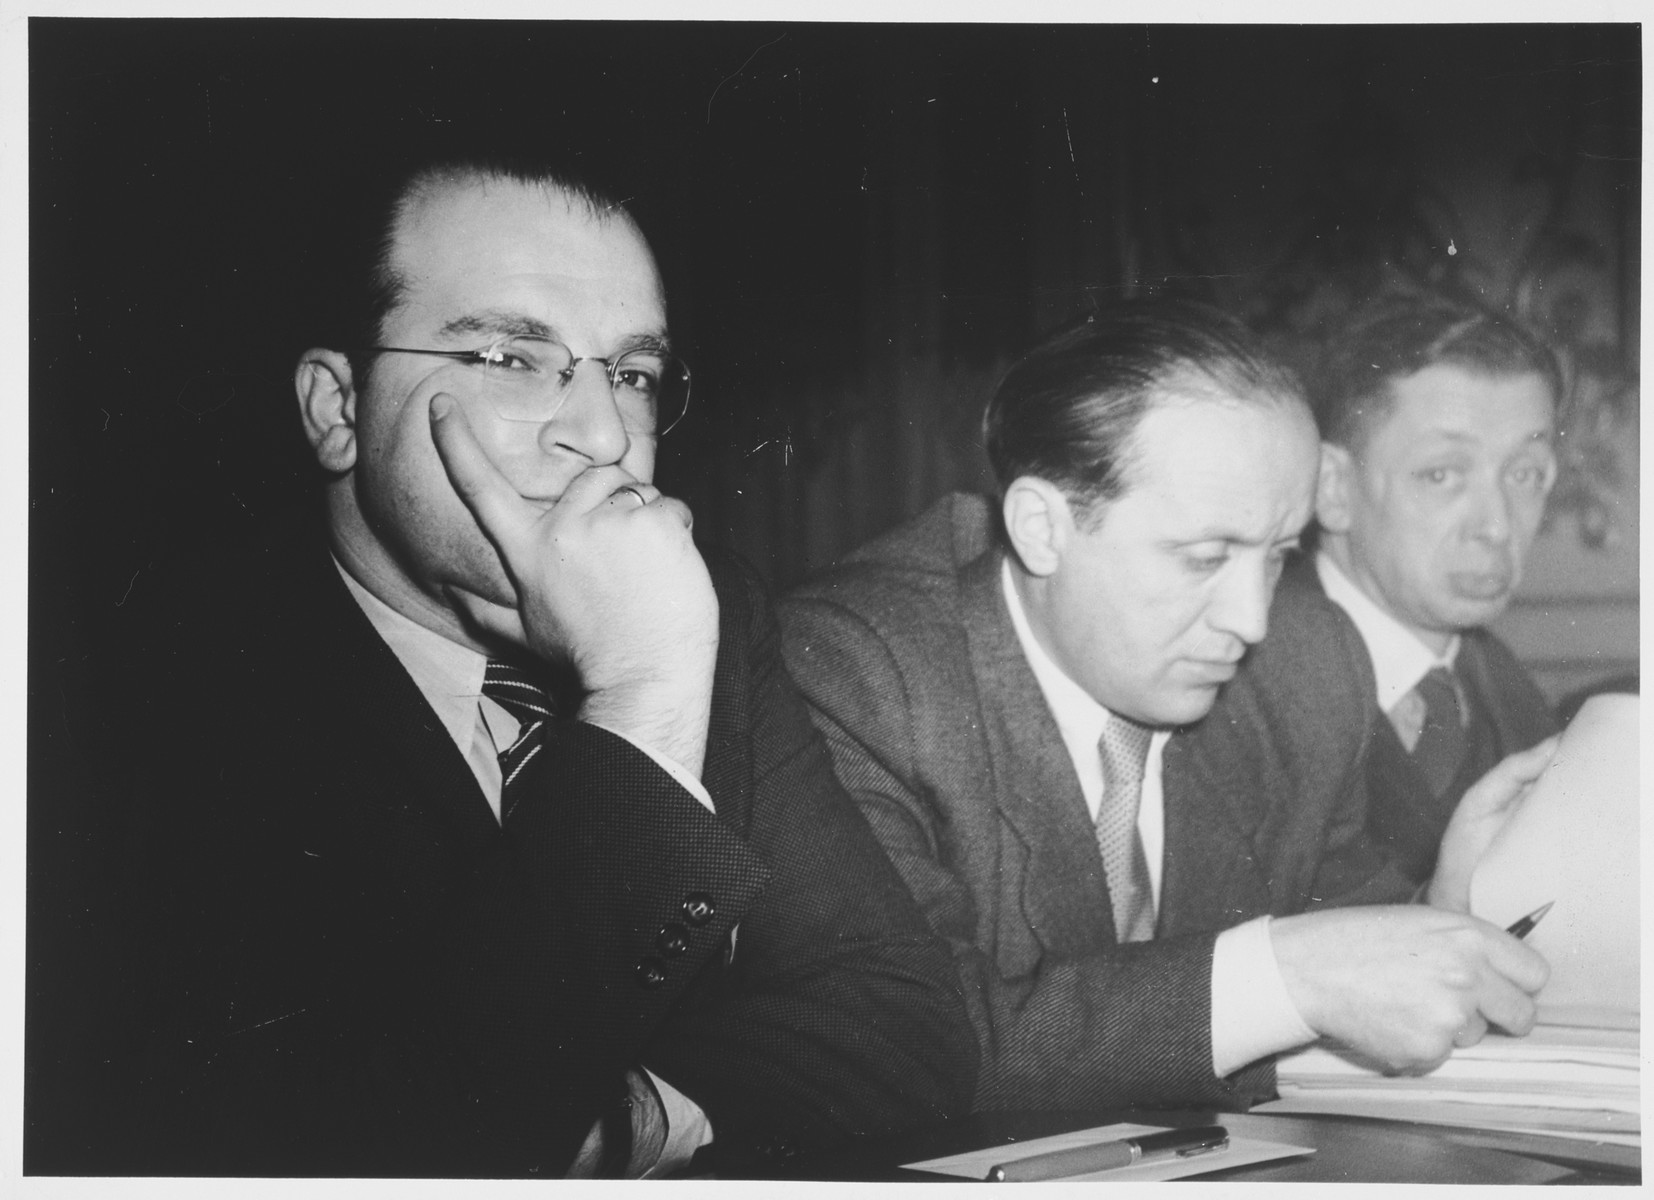 Members of the German delegation attend a conference sponsored by the Joint Distribution Committee on the status of the Jewish populations of Europe and North Africa.  Pictured from left to right are: Norbert Wollheim, Josef Rosensaft and Hans Fabian.